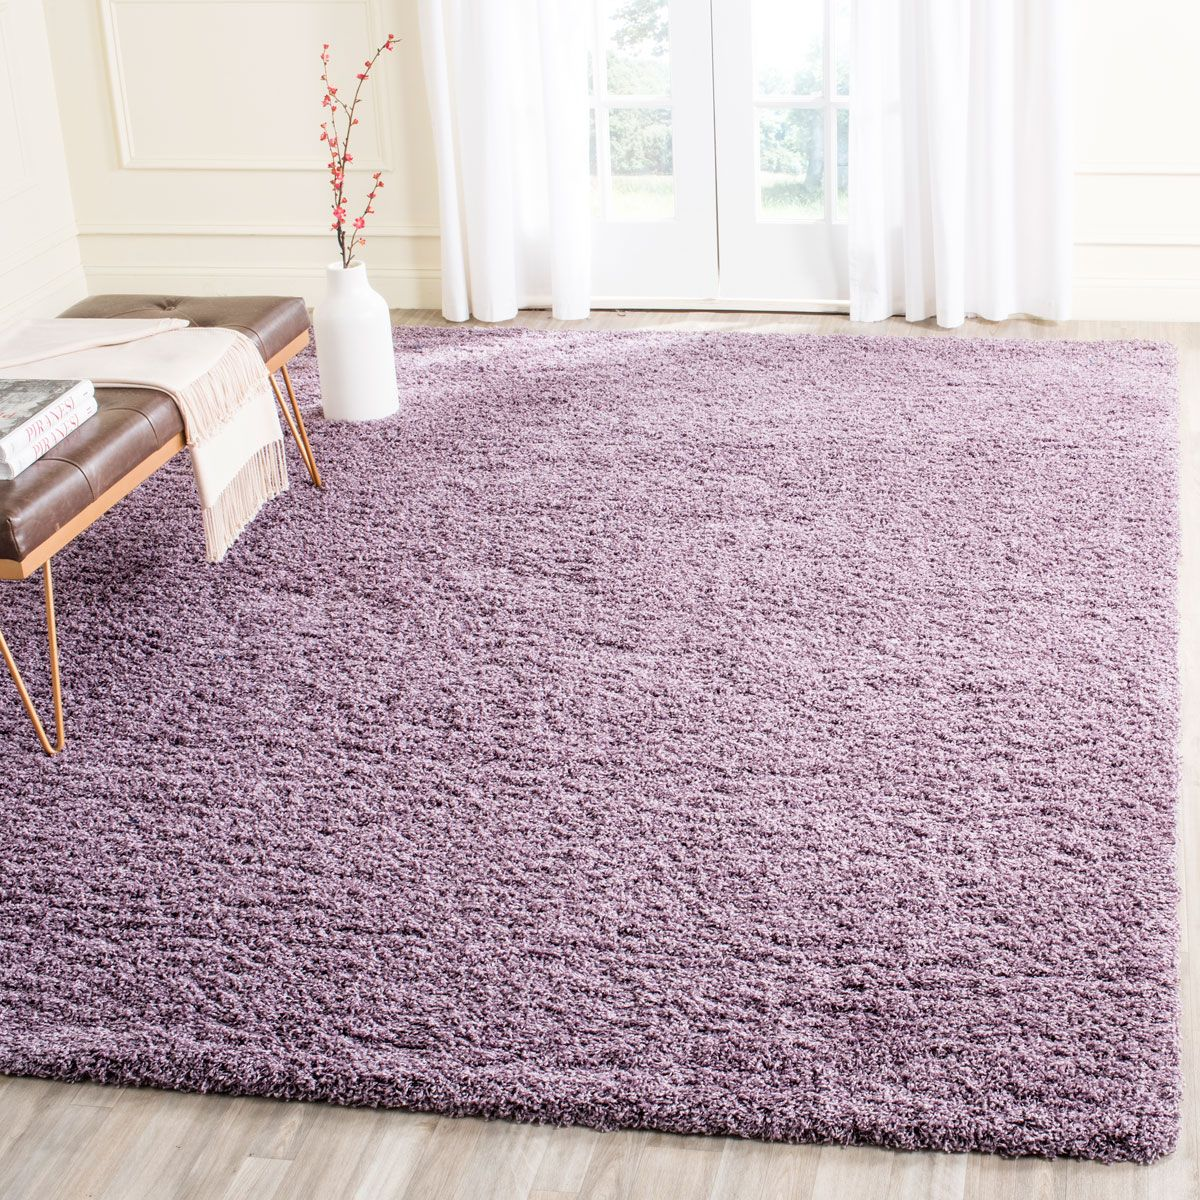 Lush Purple Shag Rug Purple Shag Rug Shag Rugs And Lush